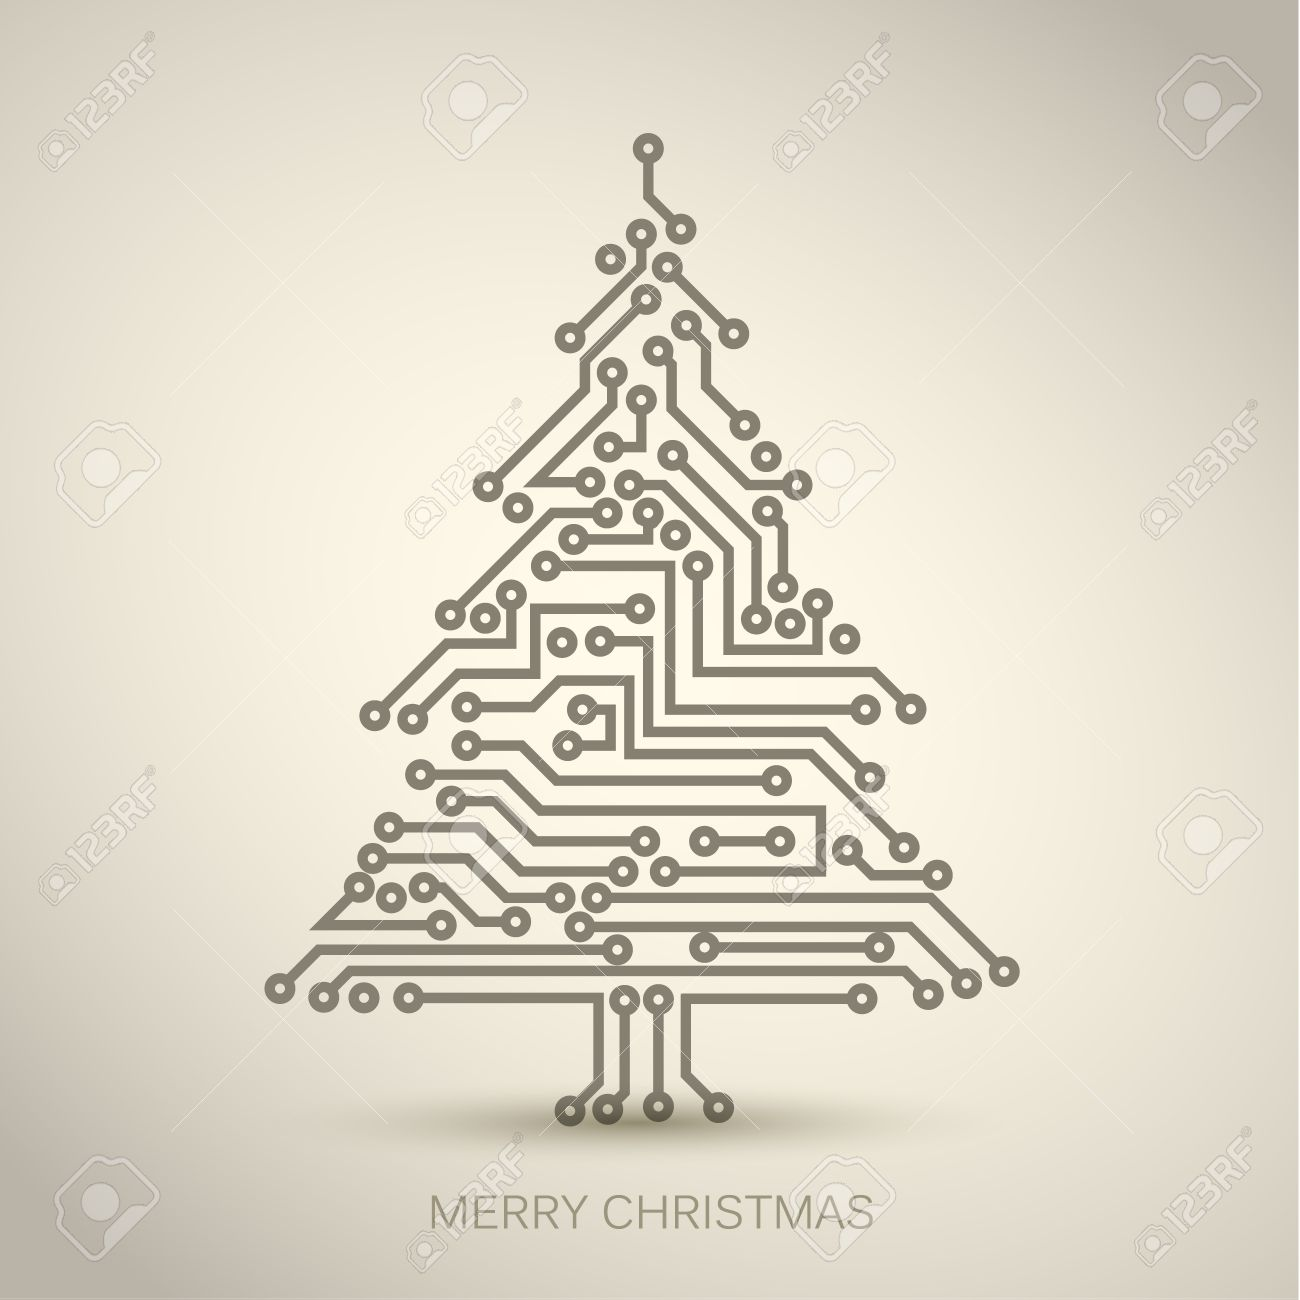 Christmas Tree From Digital Electronic Circuit Royalty Free Cliparts Vectors And Stock Illustration Image 10854635